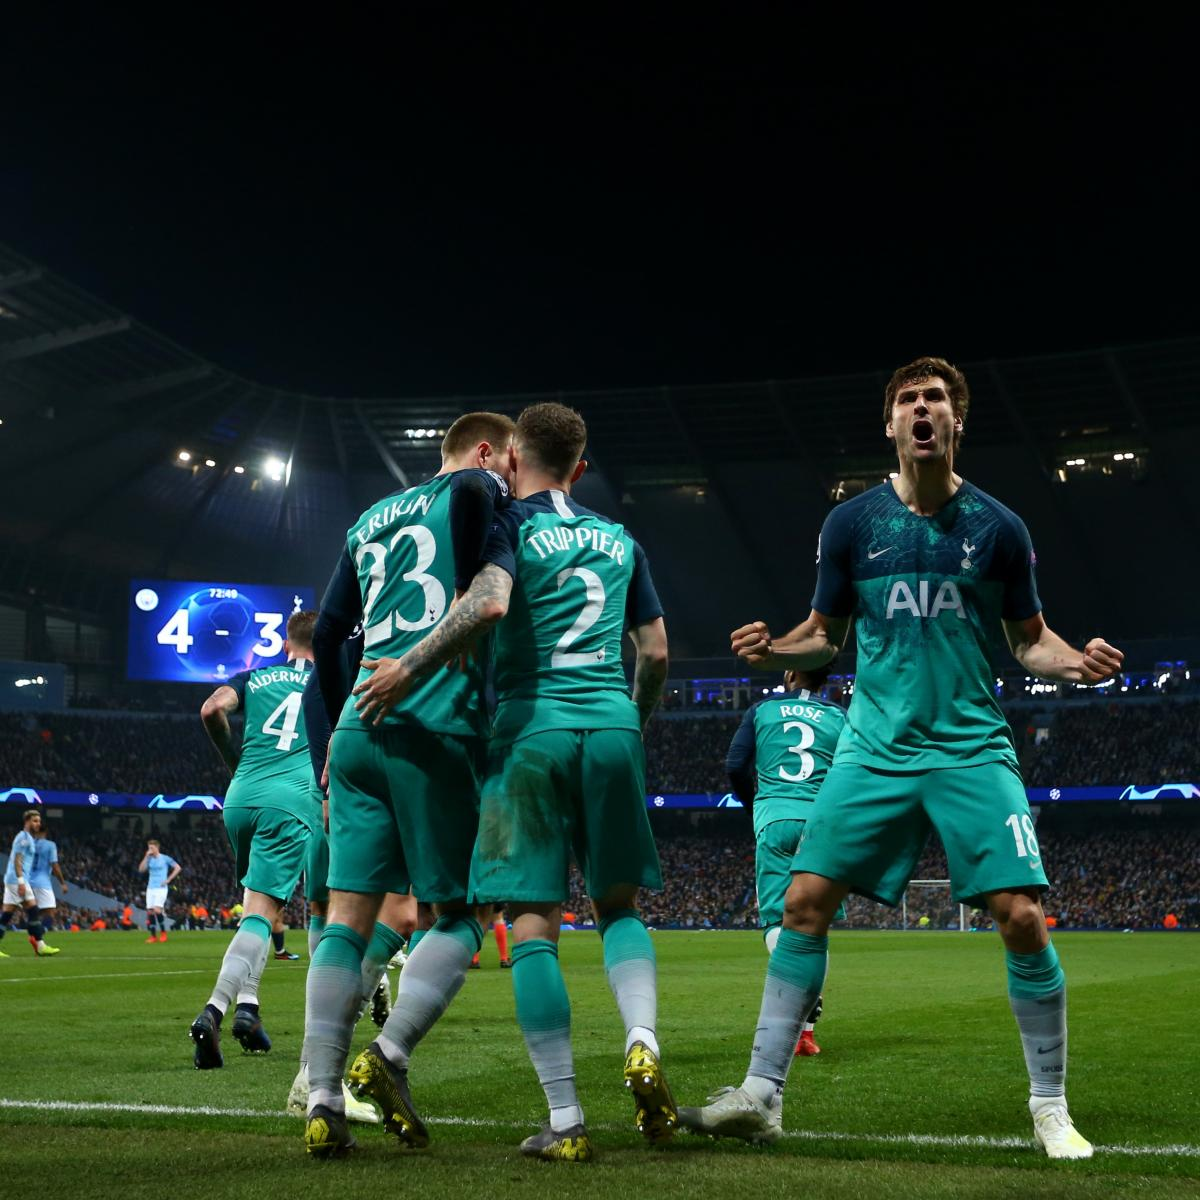 Champions League 2018-19: Semi-Final Dates Confirmed